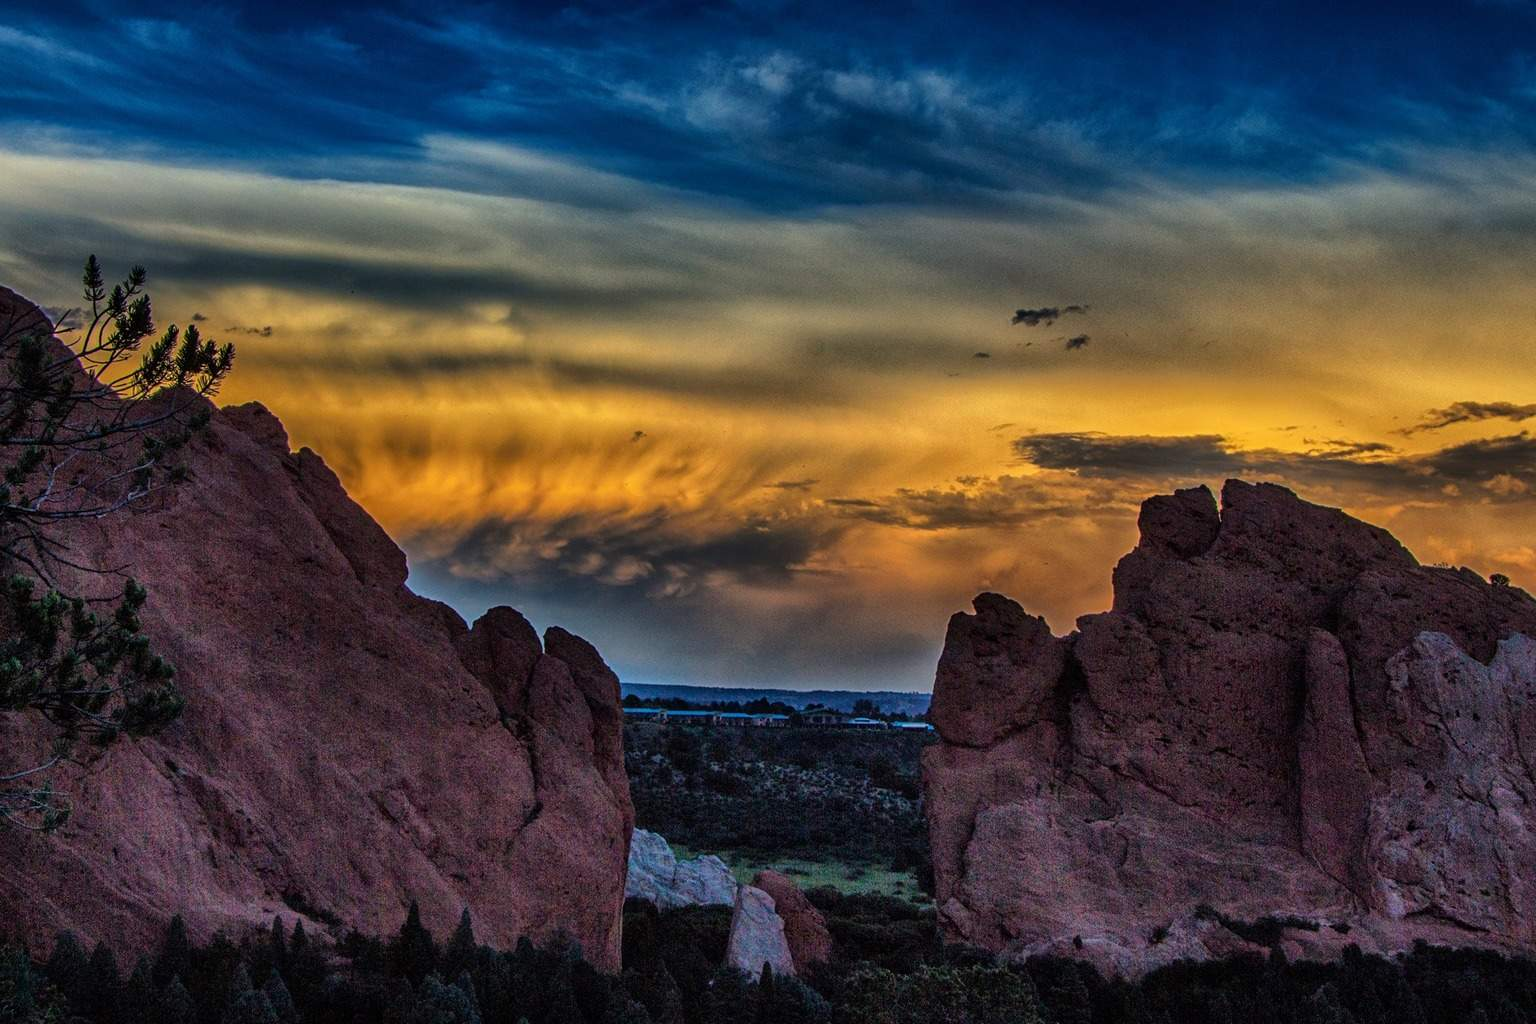 Sunset at the Garden of the Gods. Colorado Springs, CO.